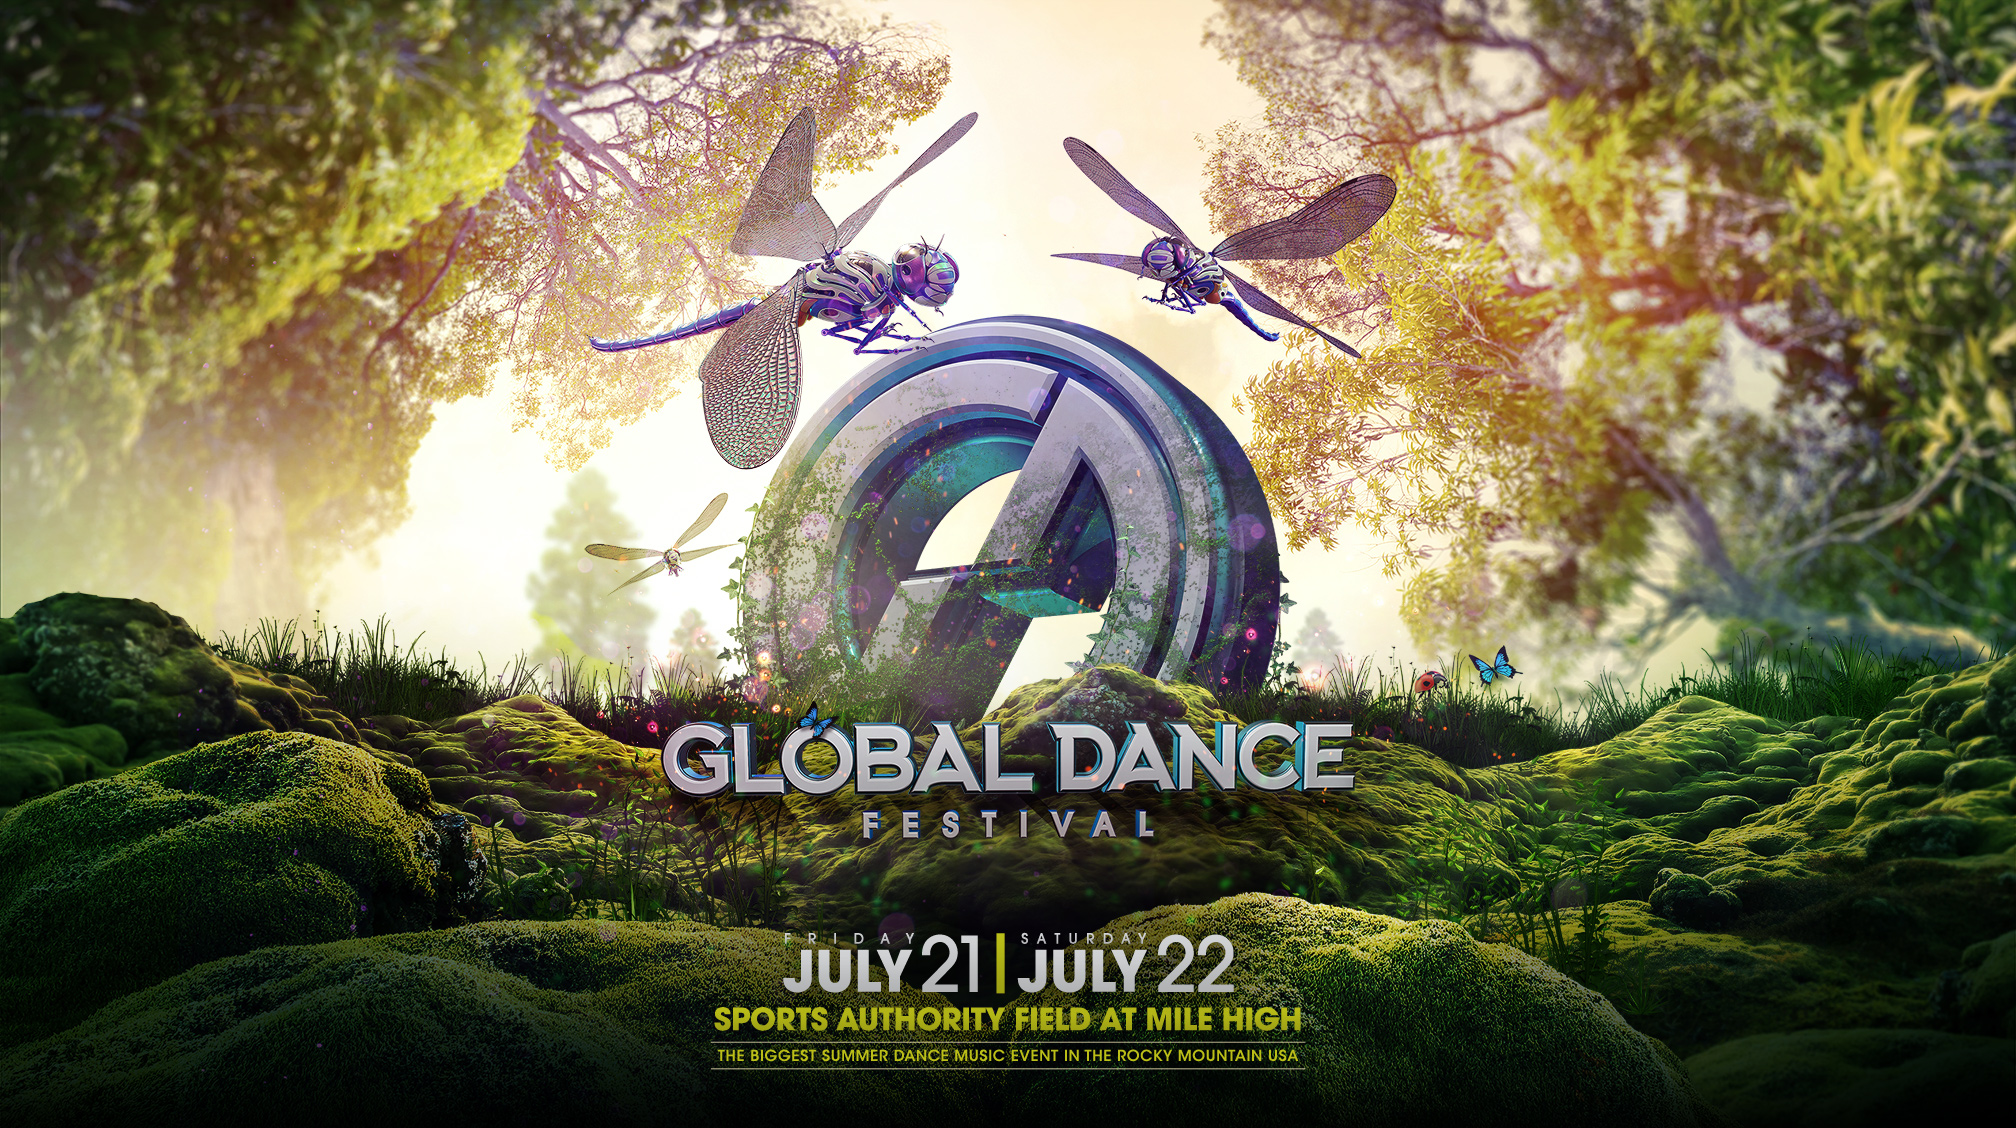 Global Dance Festival Announces 2017 Initial Lineup